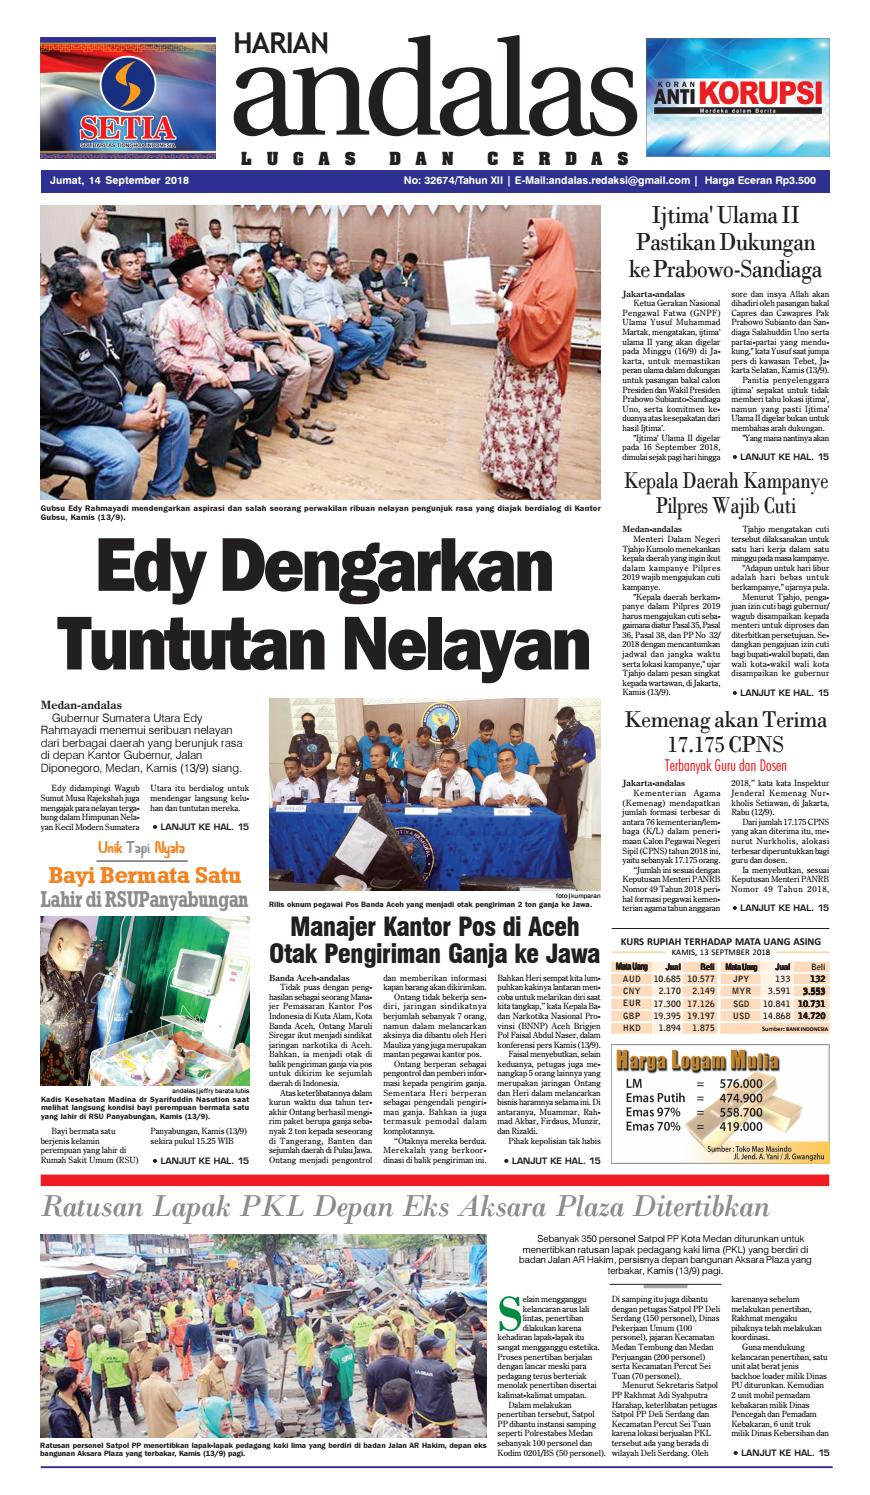 Epaper Andalas Edisi Jumat 14 September 2018 By Media Andalas Issuu